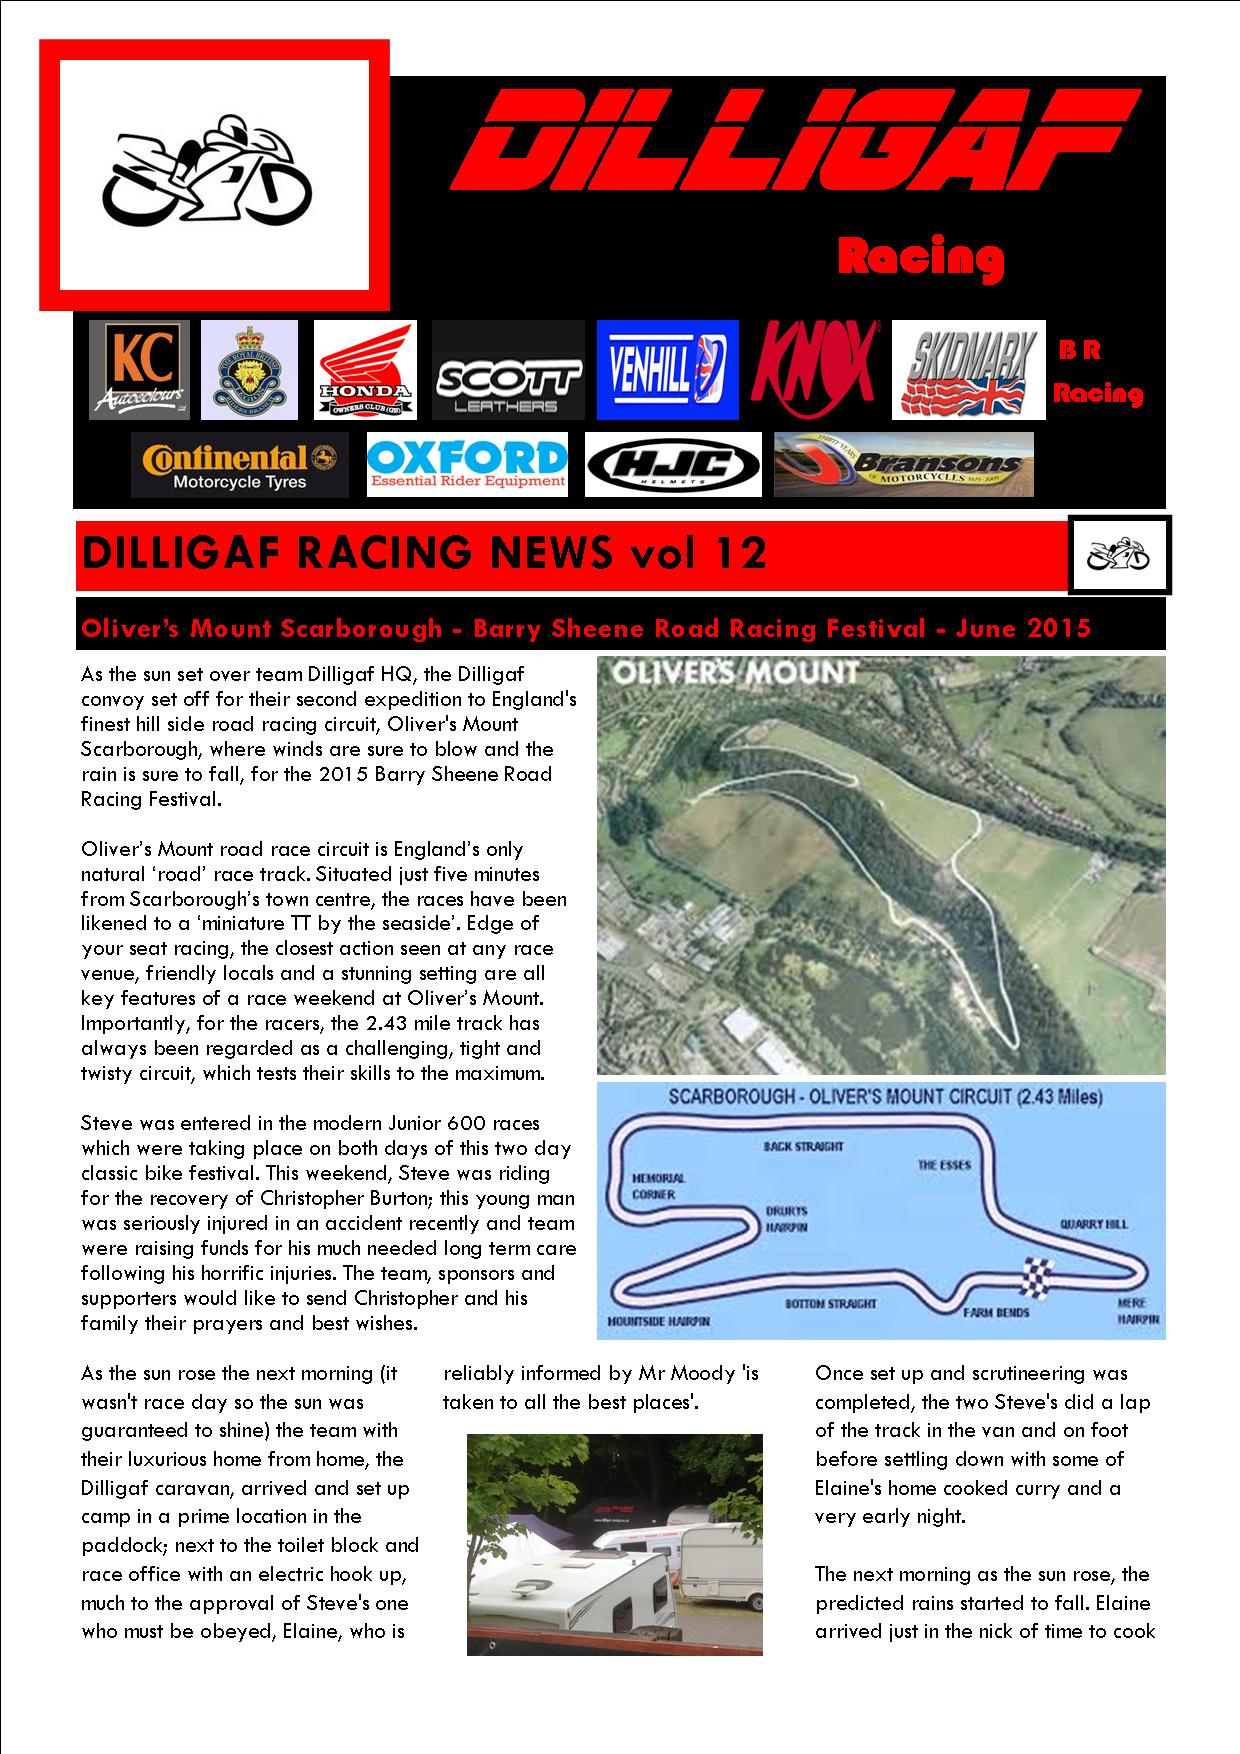 dilligaf racing news vol 12 olivers mount June 2015 p1